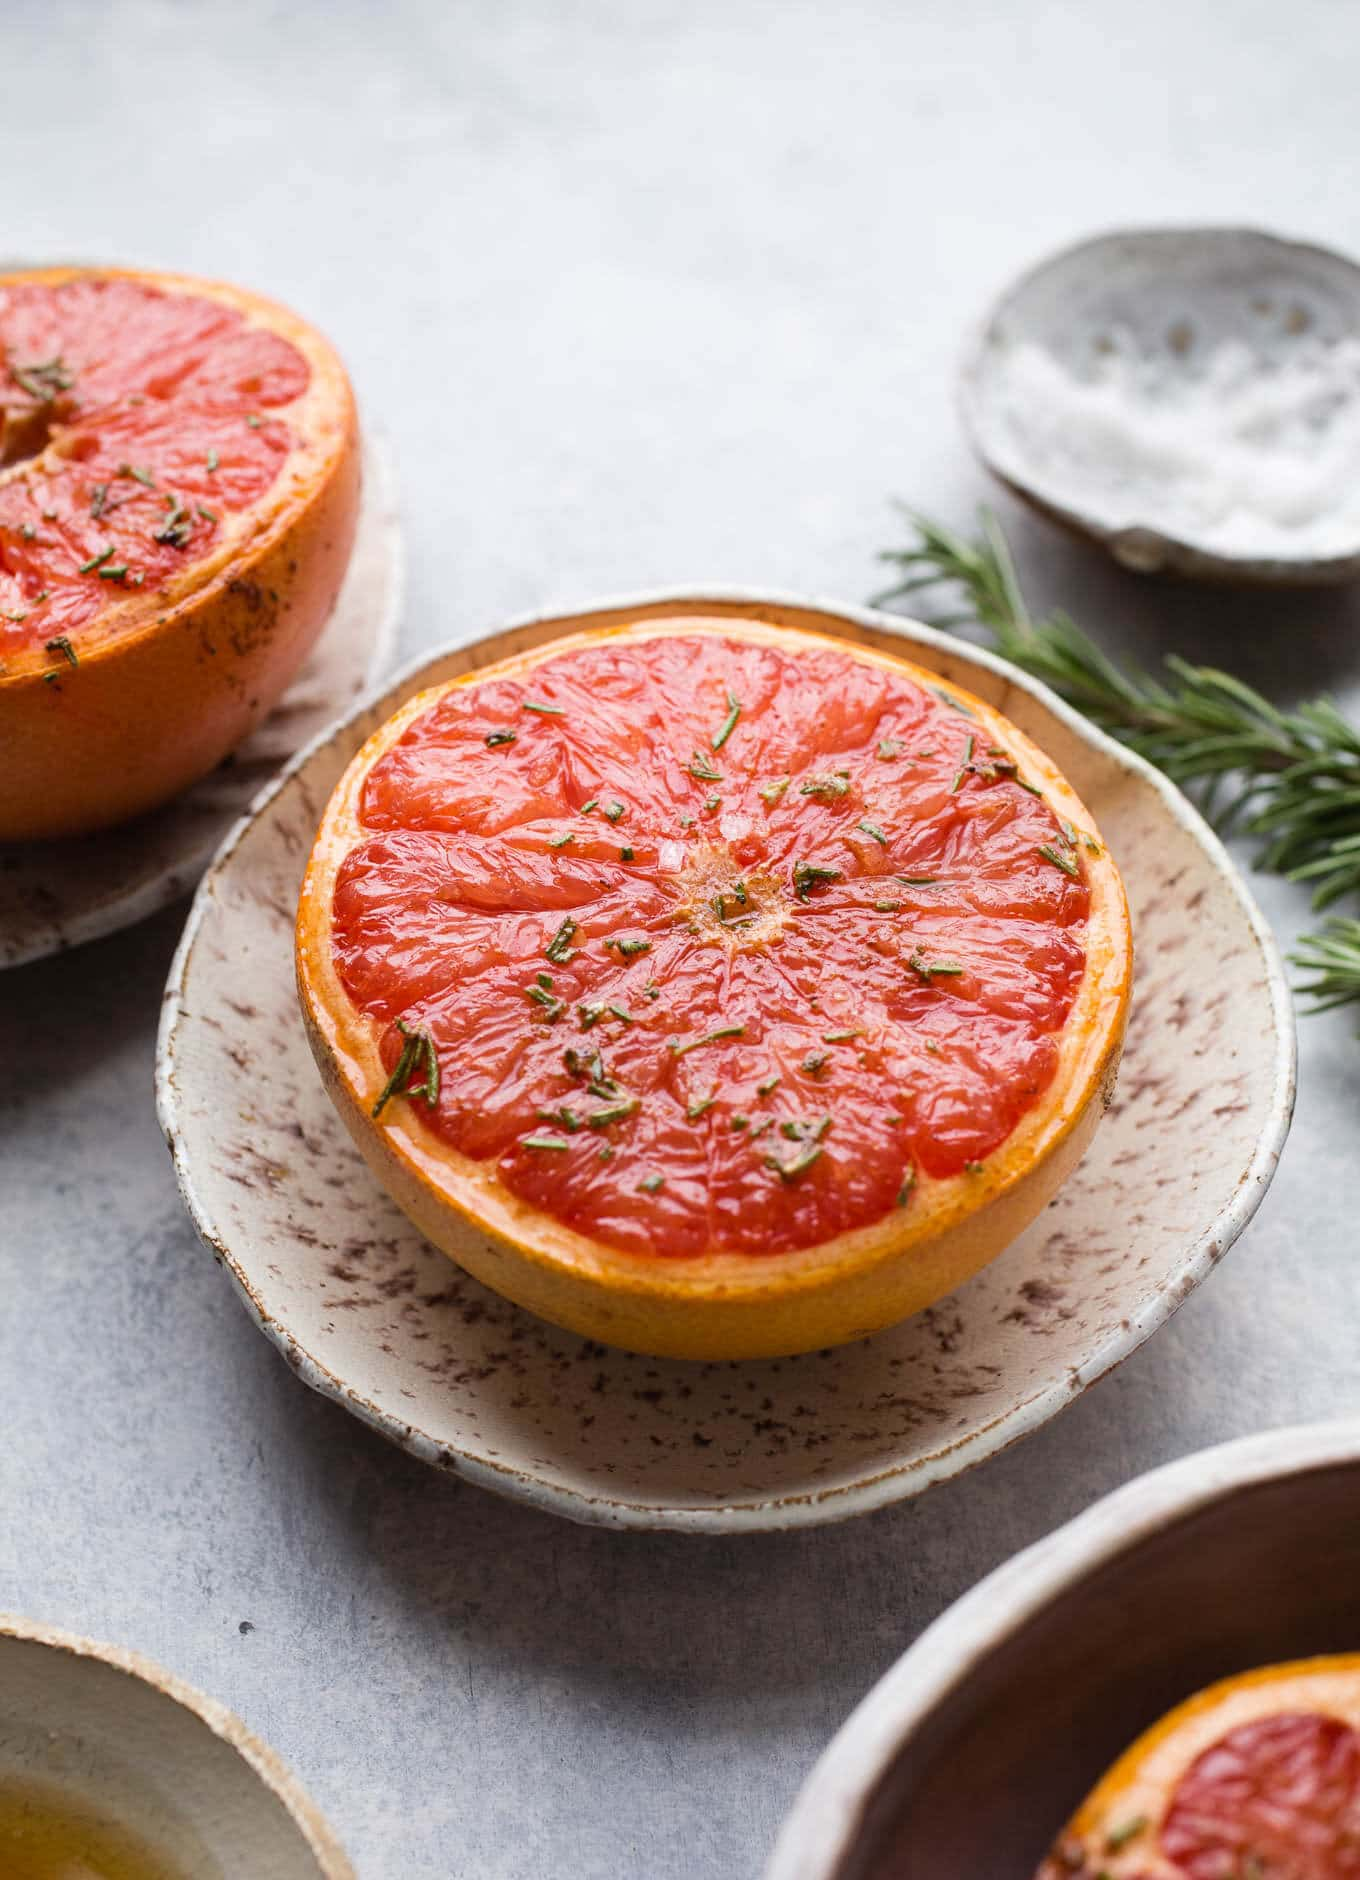 Broiled grapefruit with maple syrup, rosemary, and sea salt make for a delicious sweet and salty breakfast or brunch option. Gluten-free, vegan.